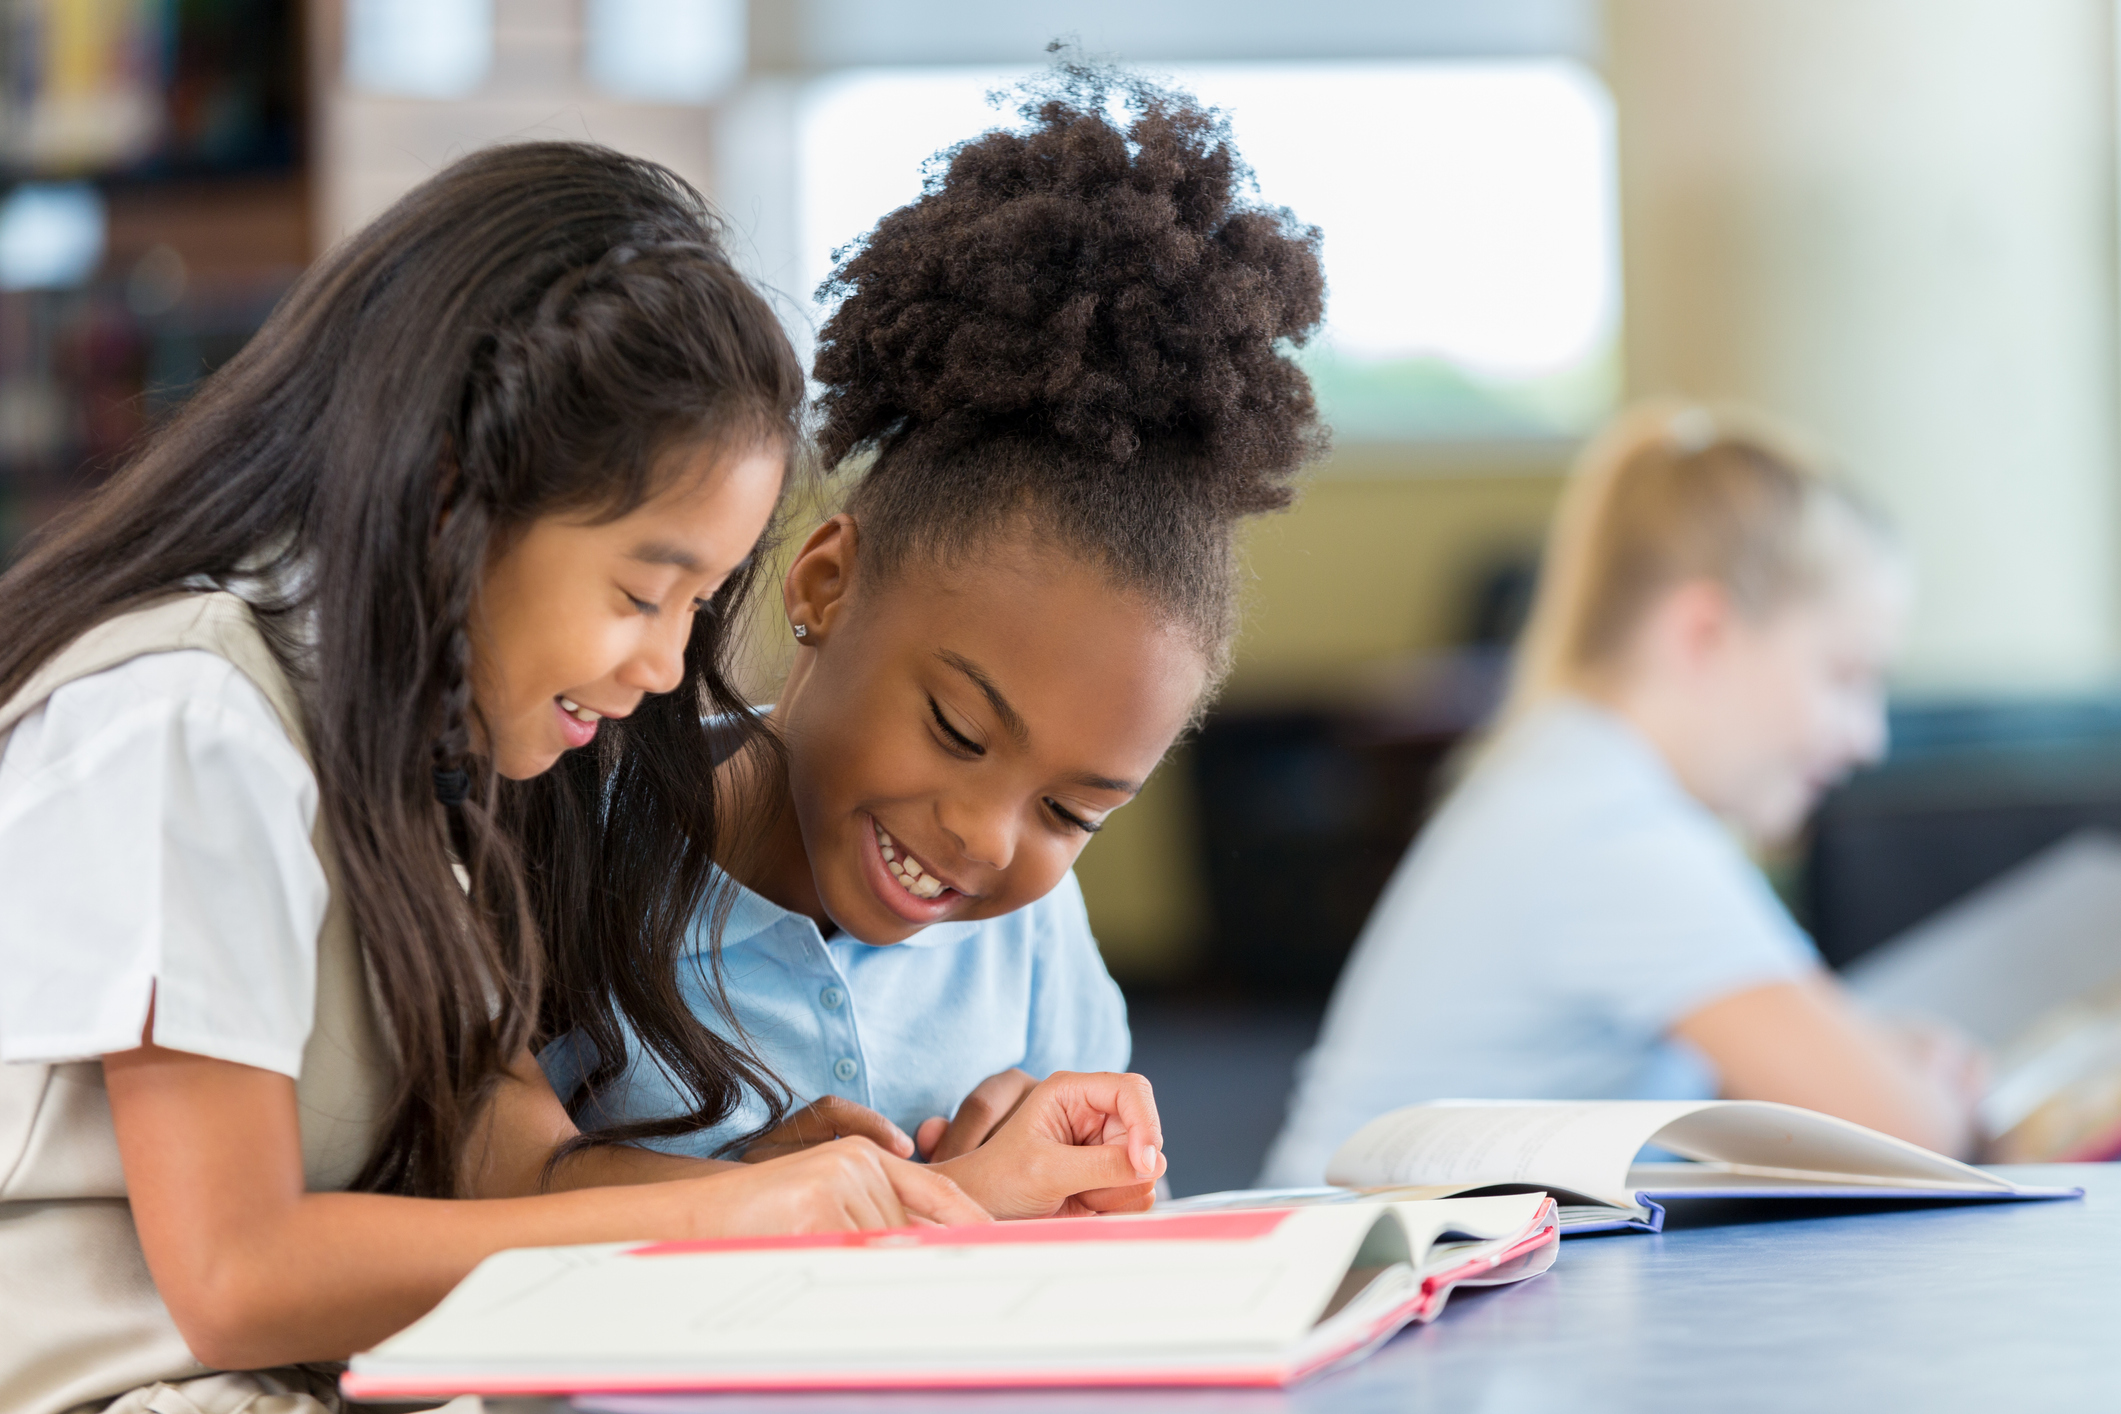 Reading Between The Lines: Why Girls' Superior Reading Skills May Be Lowering Their Future Salaries